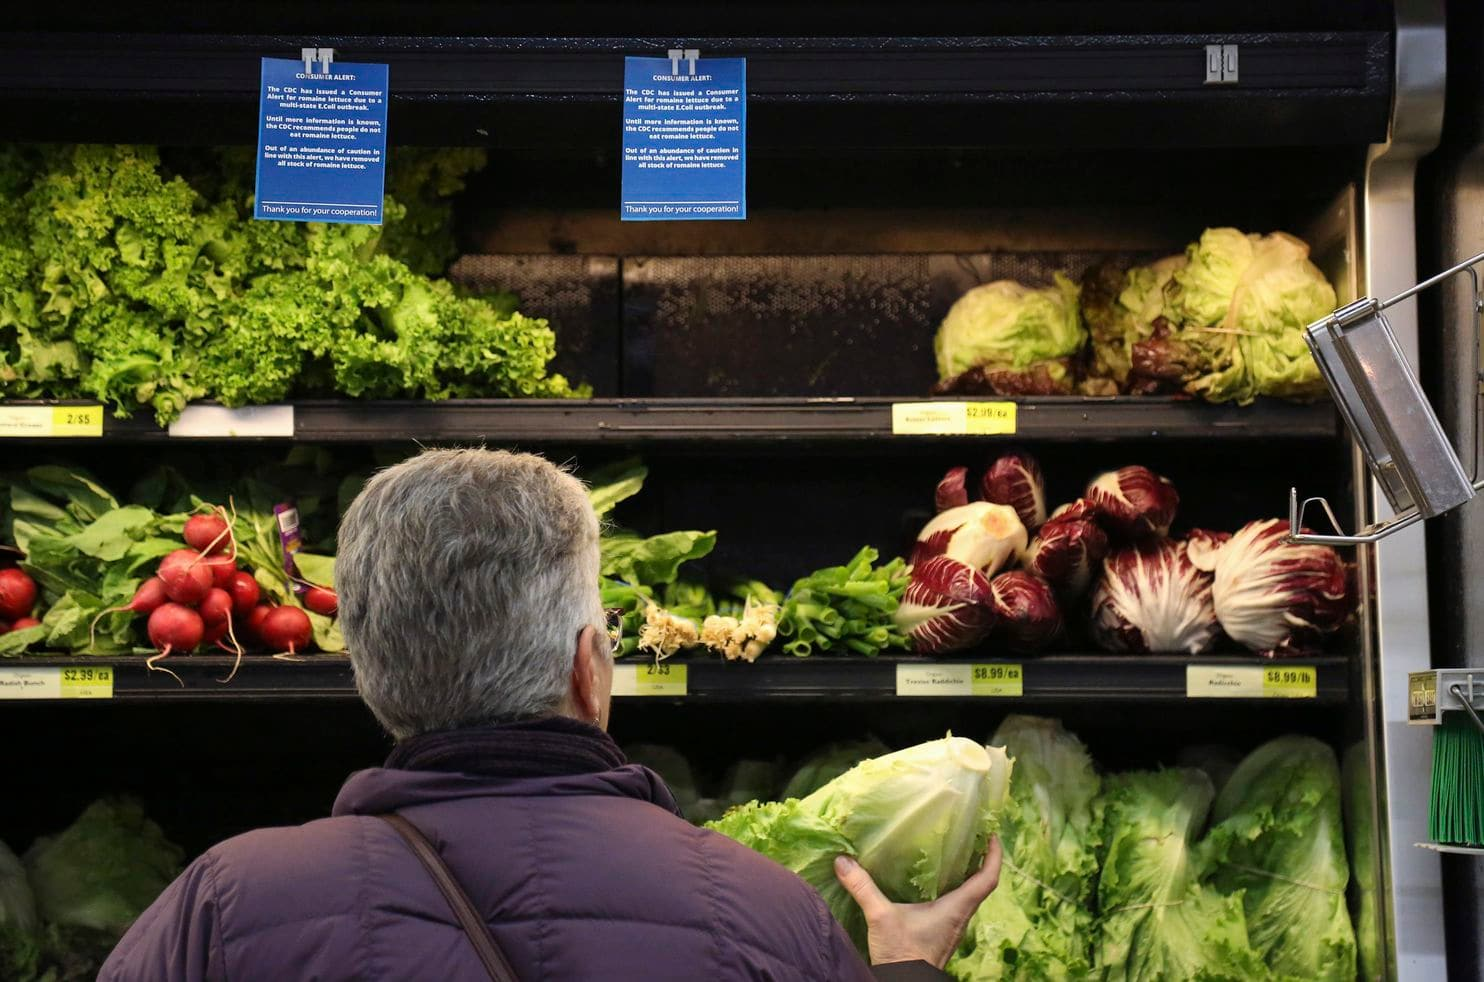 Lisa Dennis selects lettuce from the vegetable shelves at the East End Food Co-op Federal Credit Union in Pittsburgh on Nov. 20. (Jessie Wardarski/Pittsburgh Post-Gazette/AP)